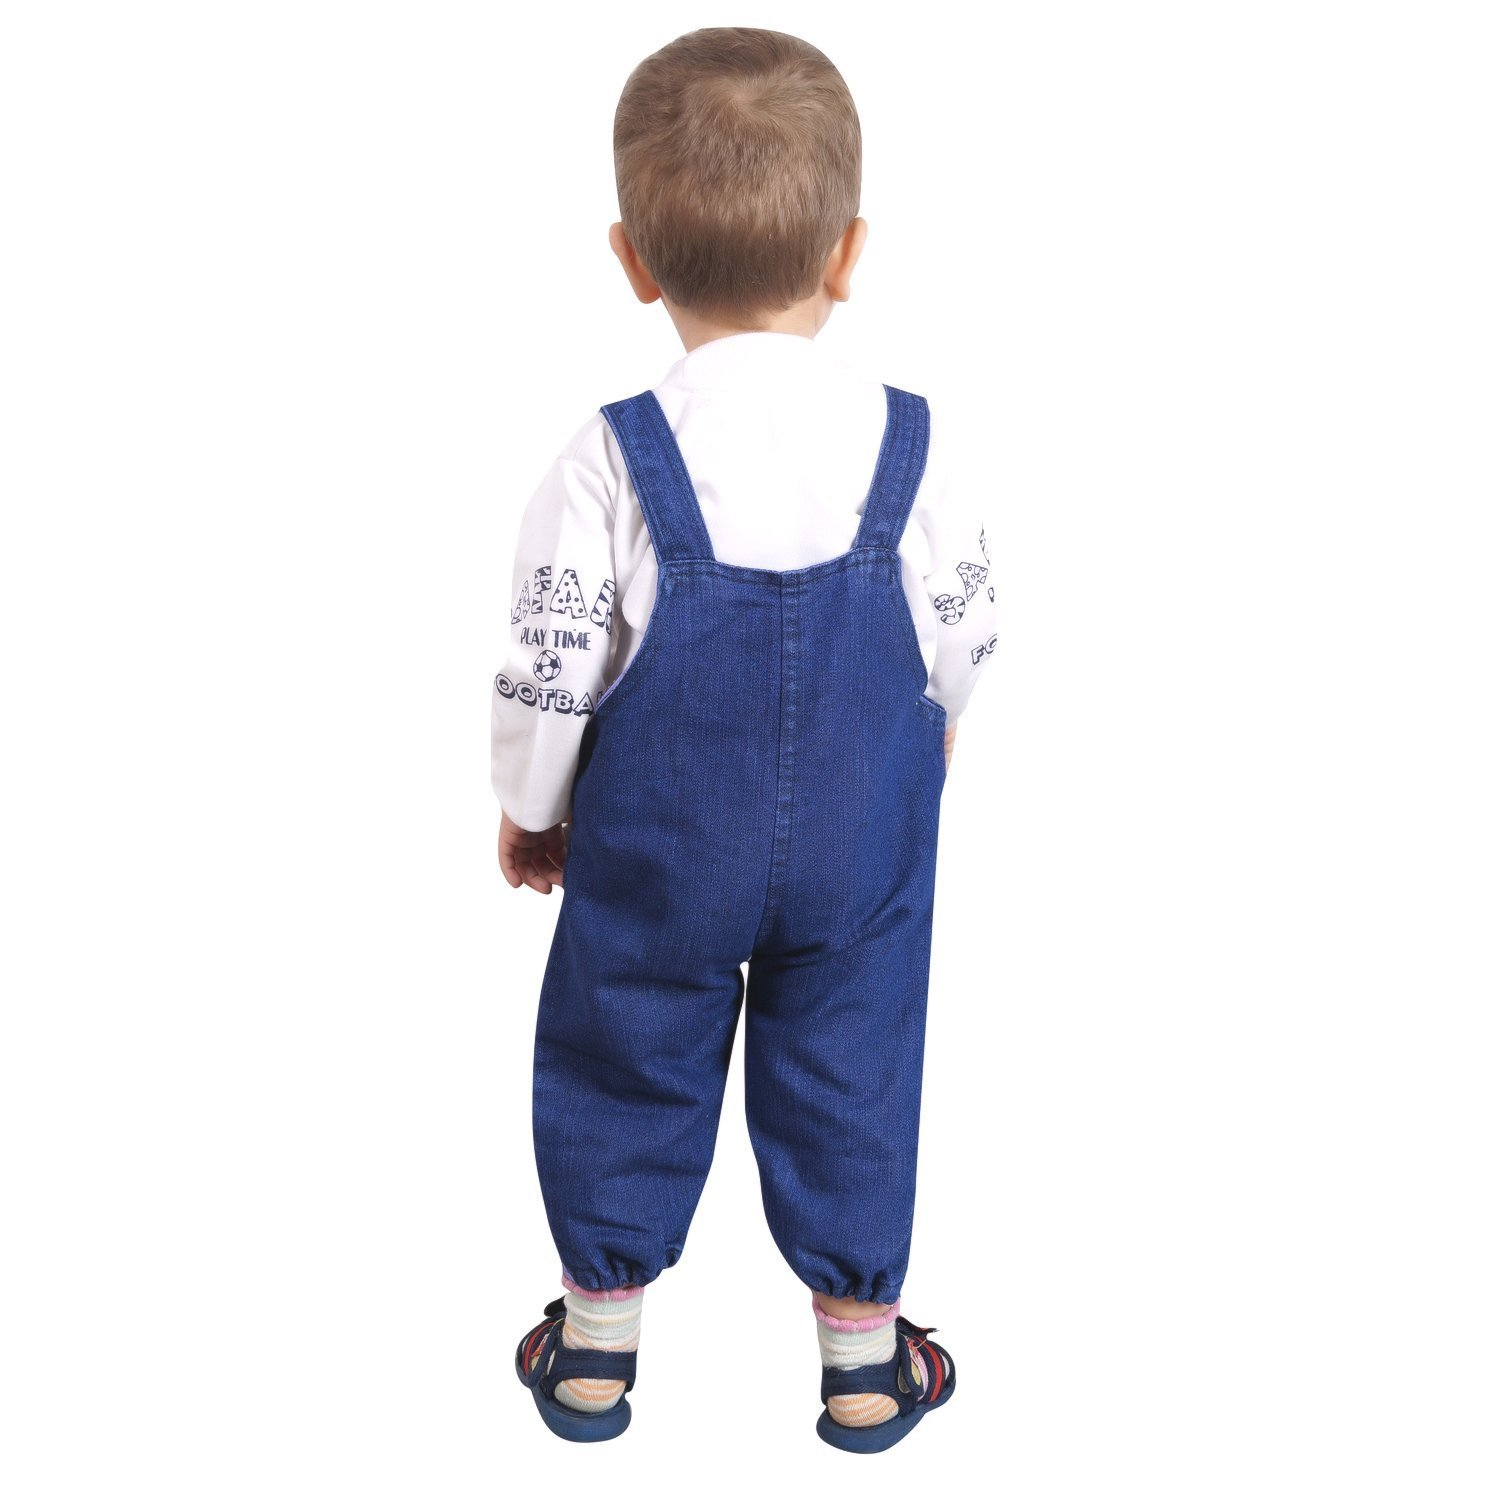 Manraj Collection Baby Boy Girl Full Sleeves Denim Dungaree Mom N Bab Dress Vest Blue With T Shirt Hosiery Soft Cotton Touch 12 18 Months